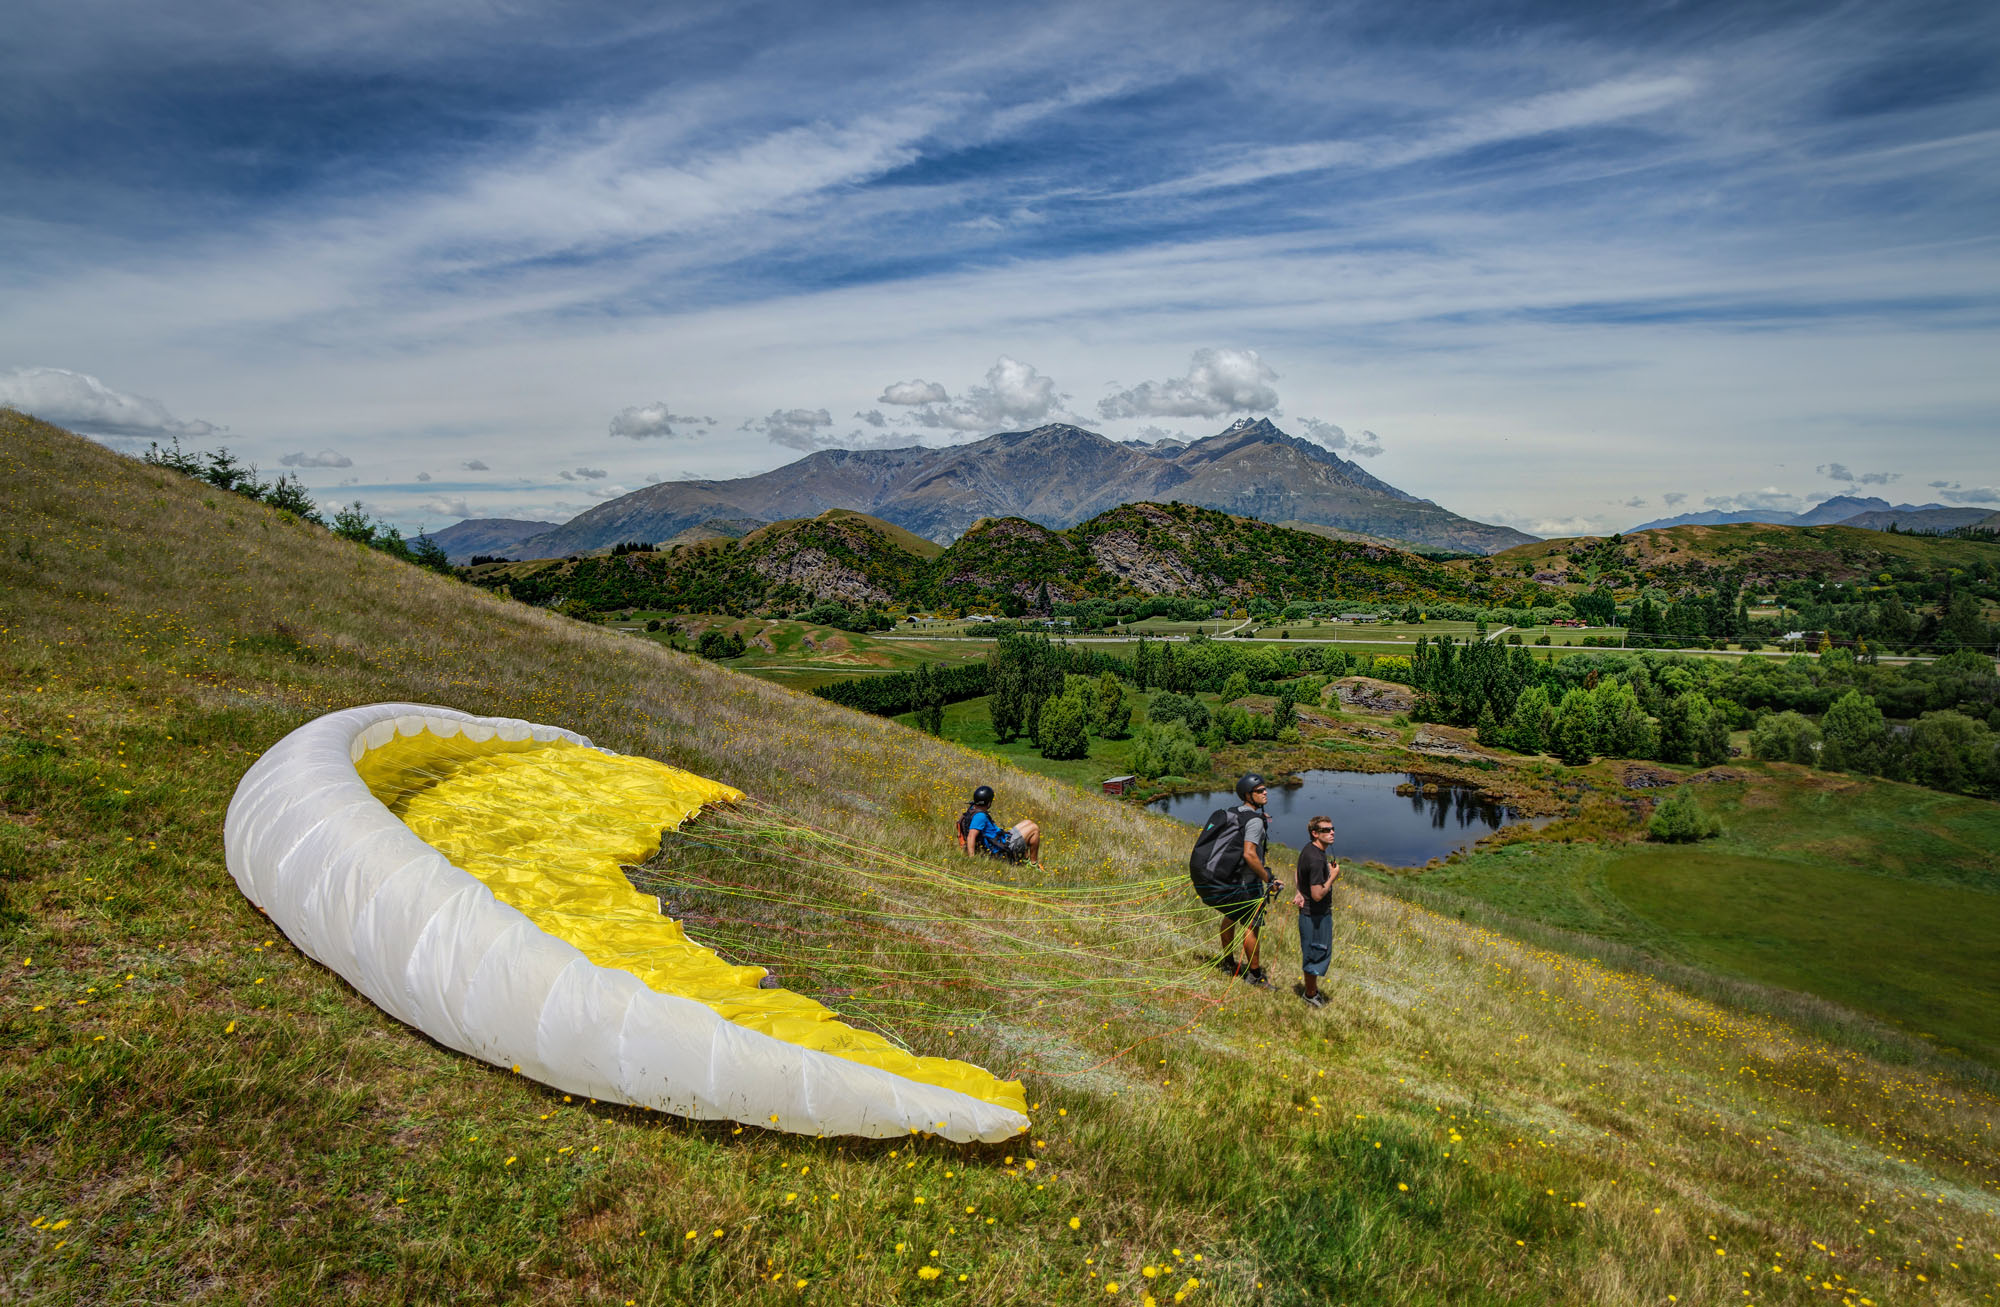 Intro Day Course - Infinity Paragliding 12